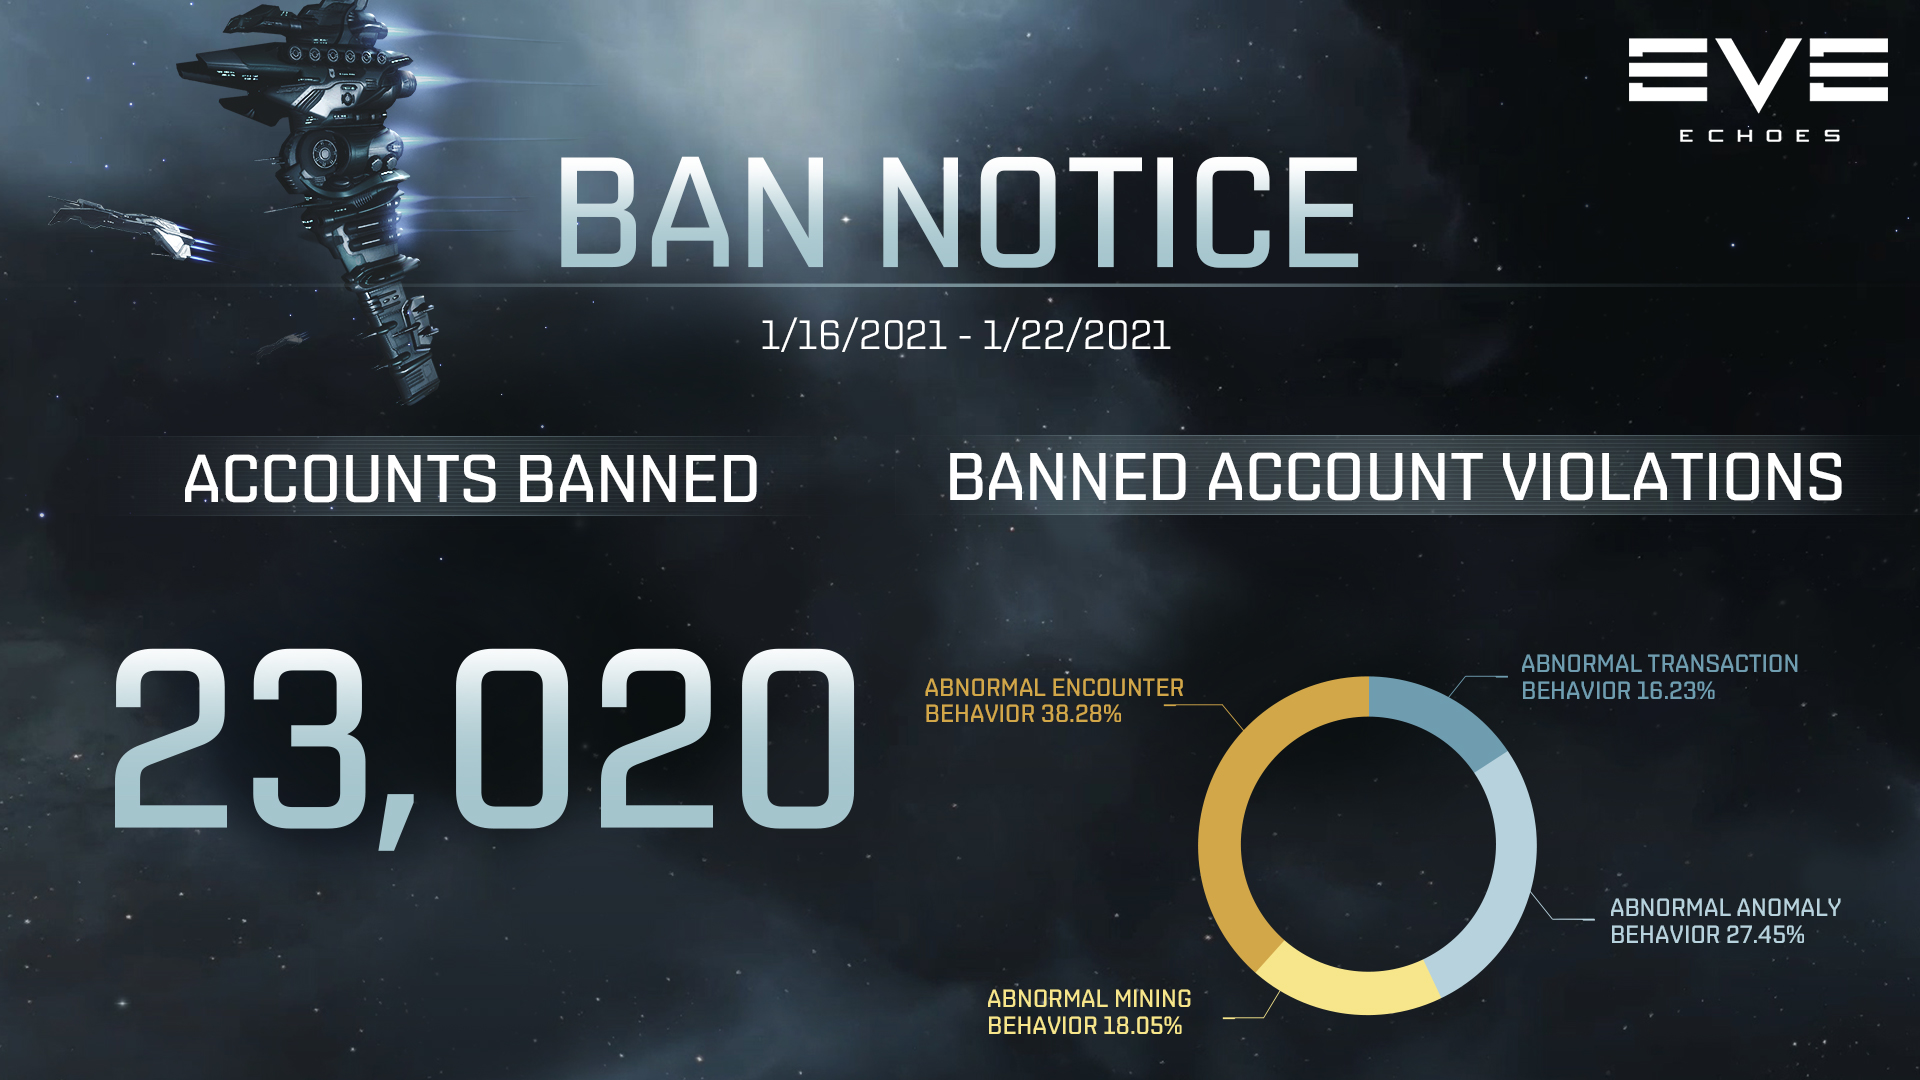 Ban Notice for 01/16-01/22